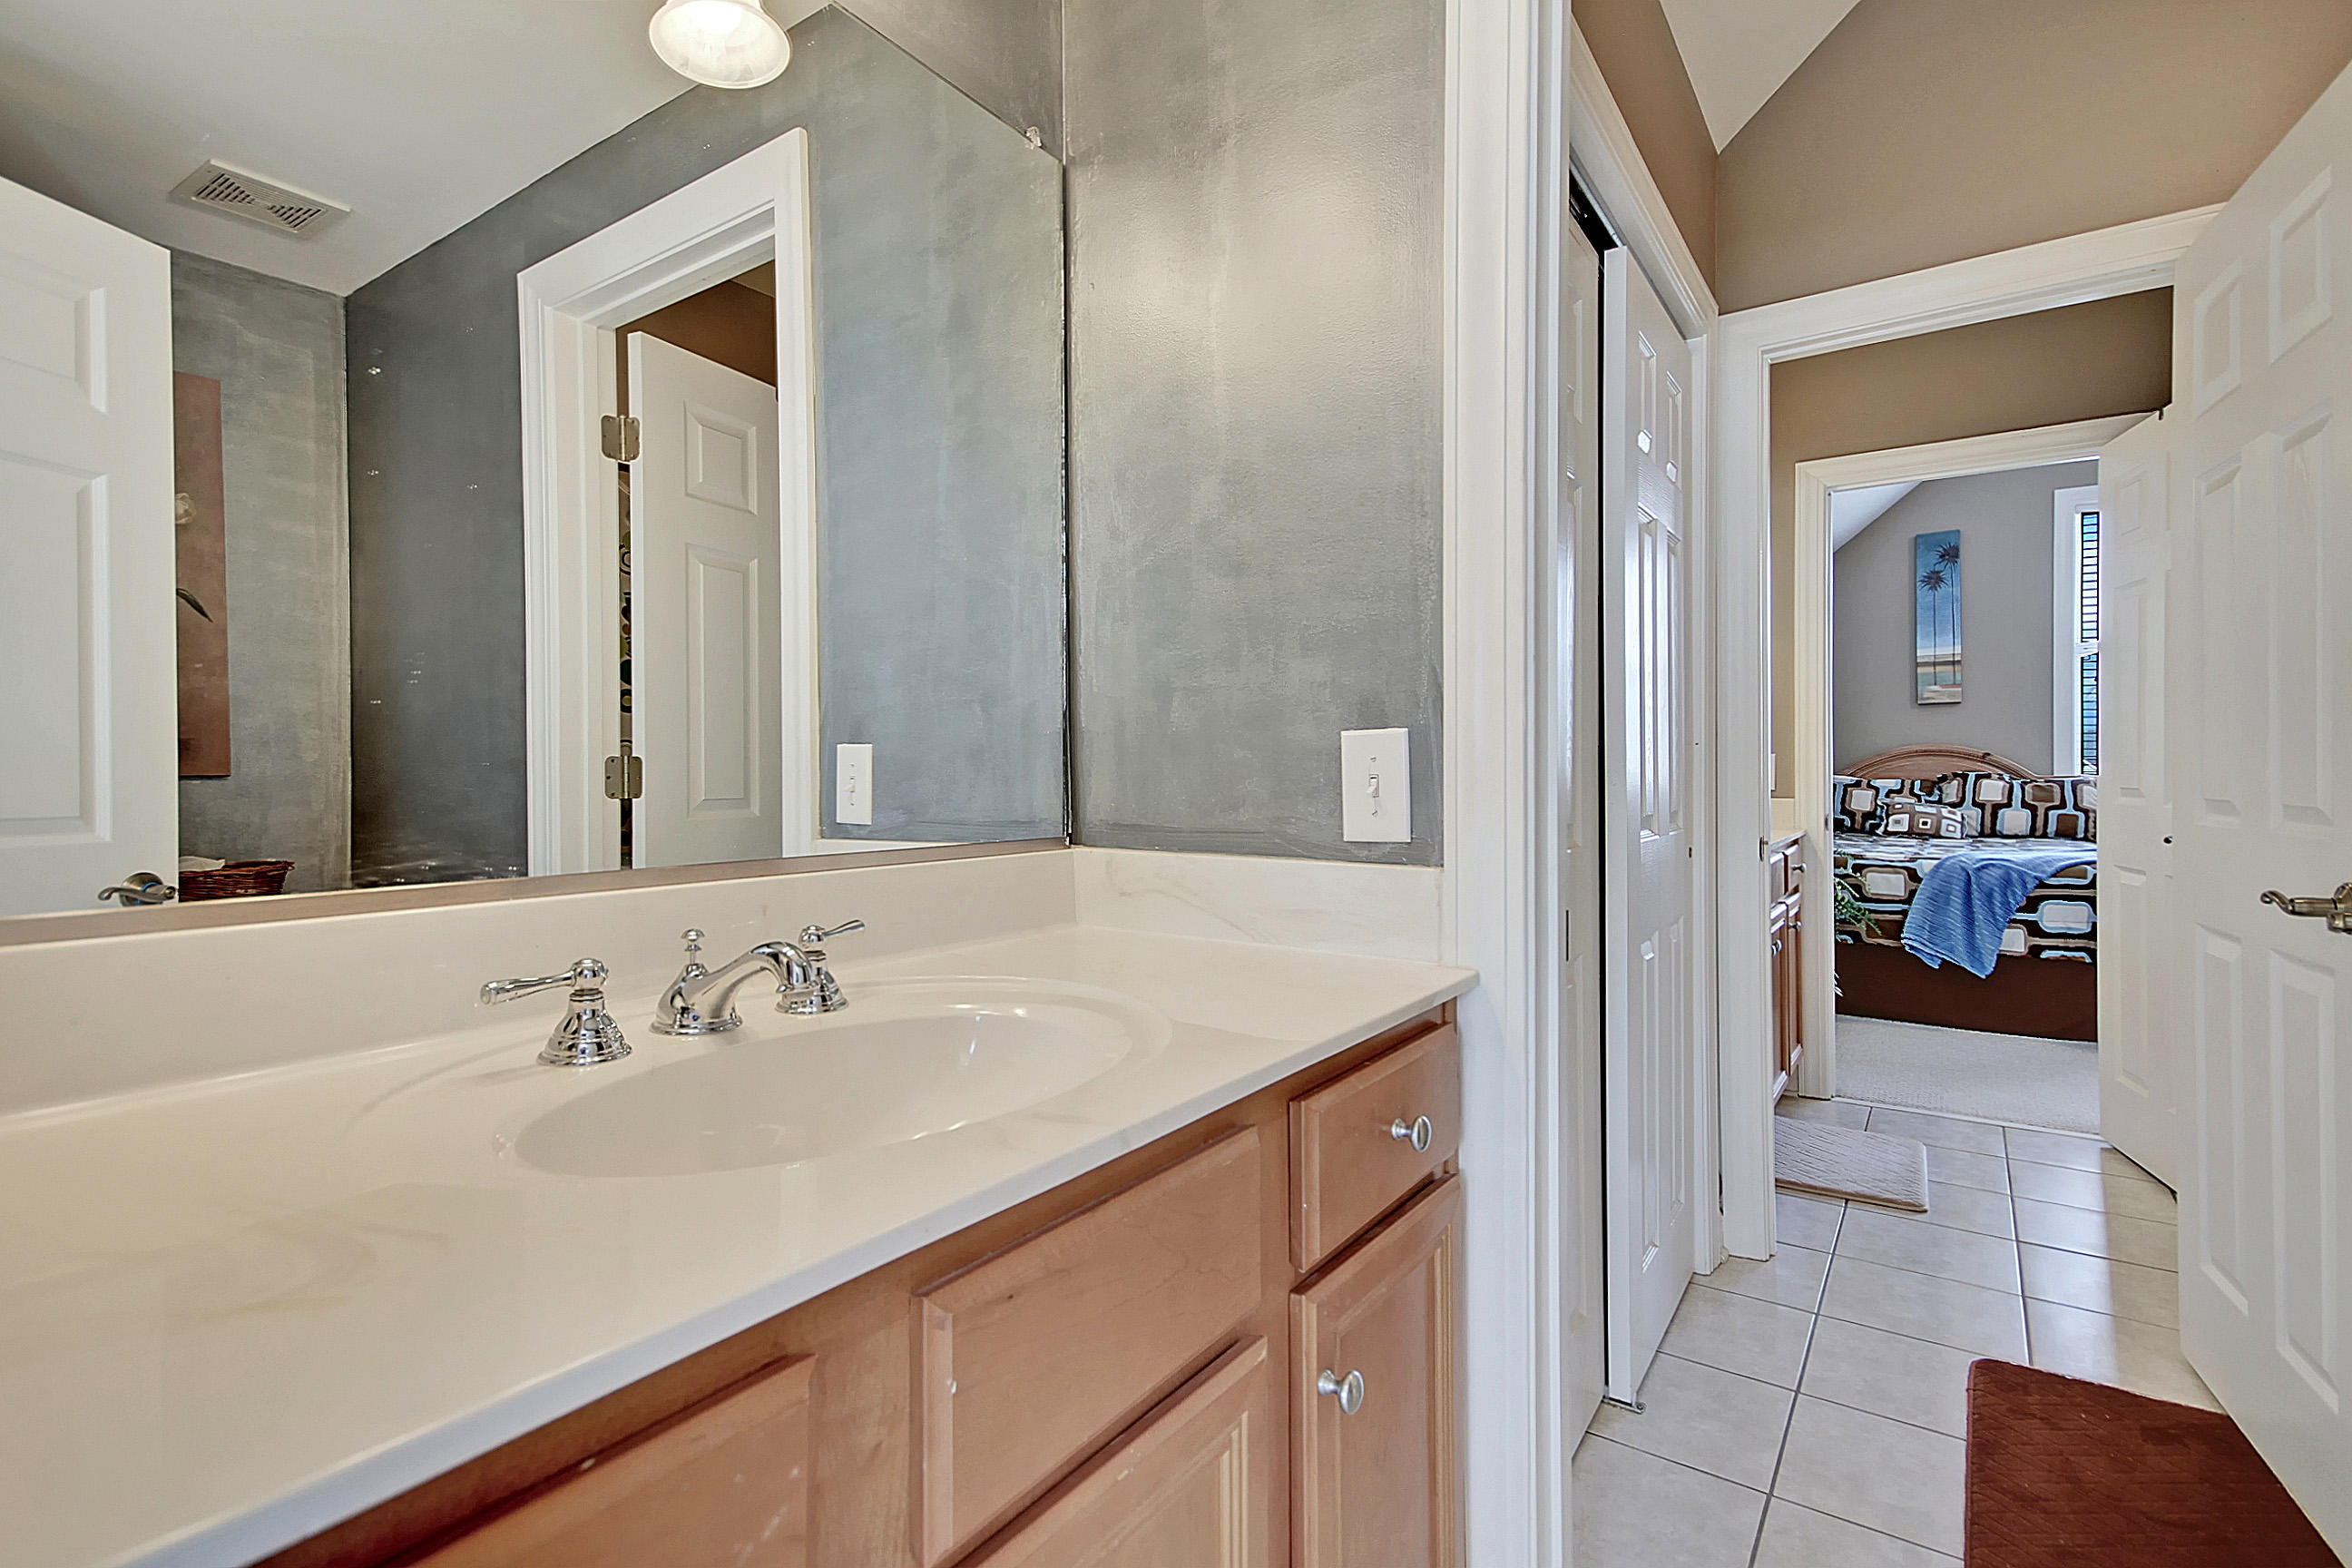 Rivertowne Country Club Homes For Sale - 1536 Rivertowne Country Club, Mount Pleasant, SC - 29